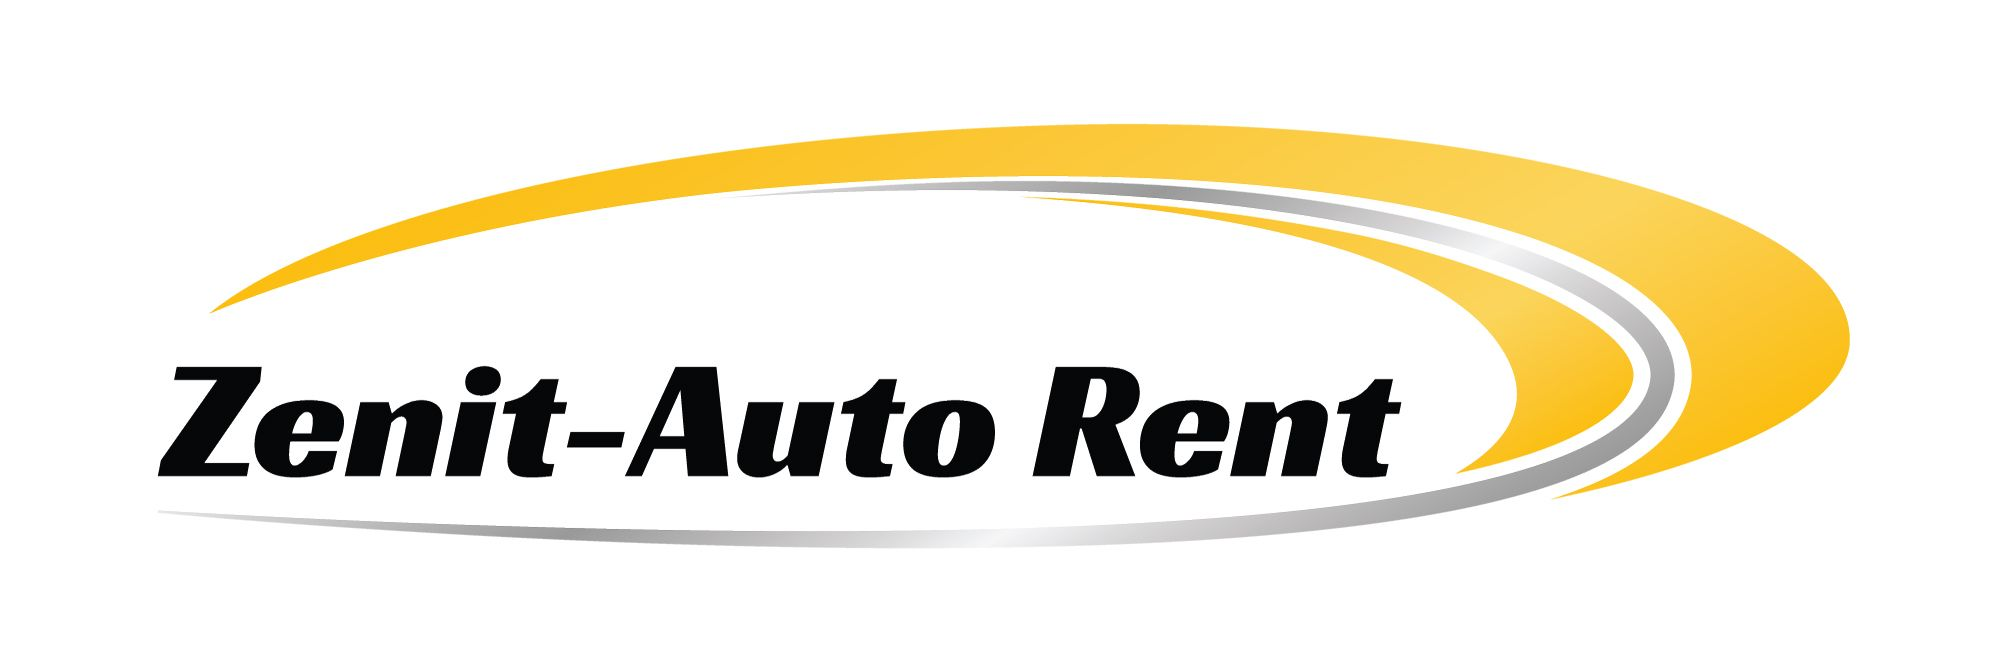 Zenit Autorent